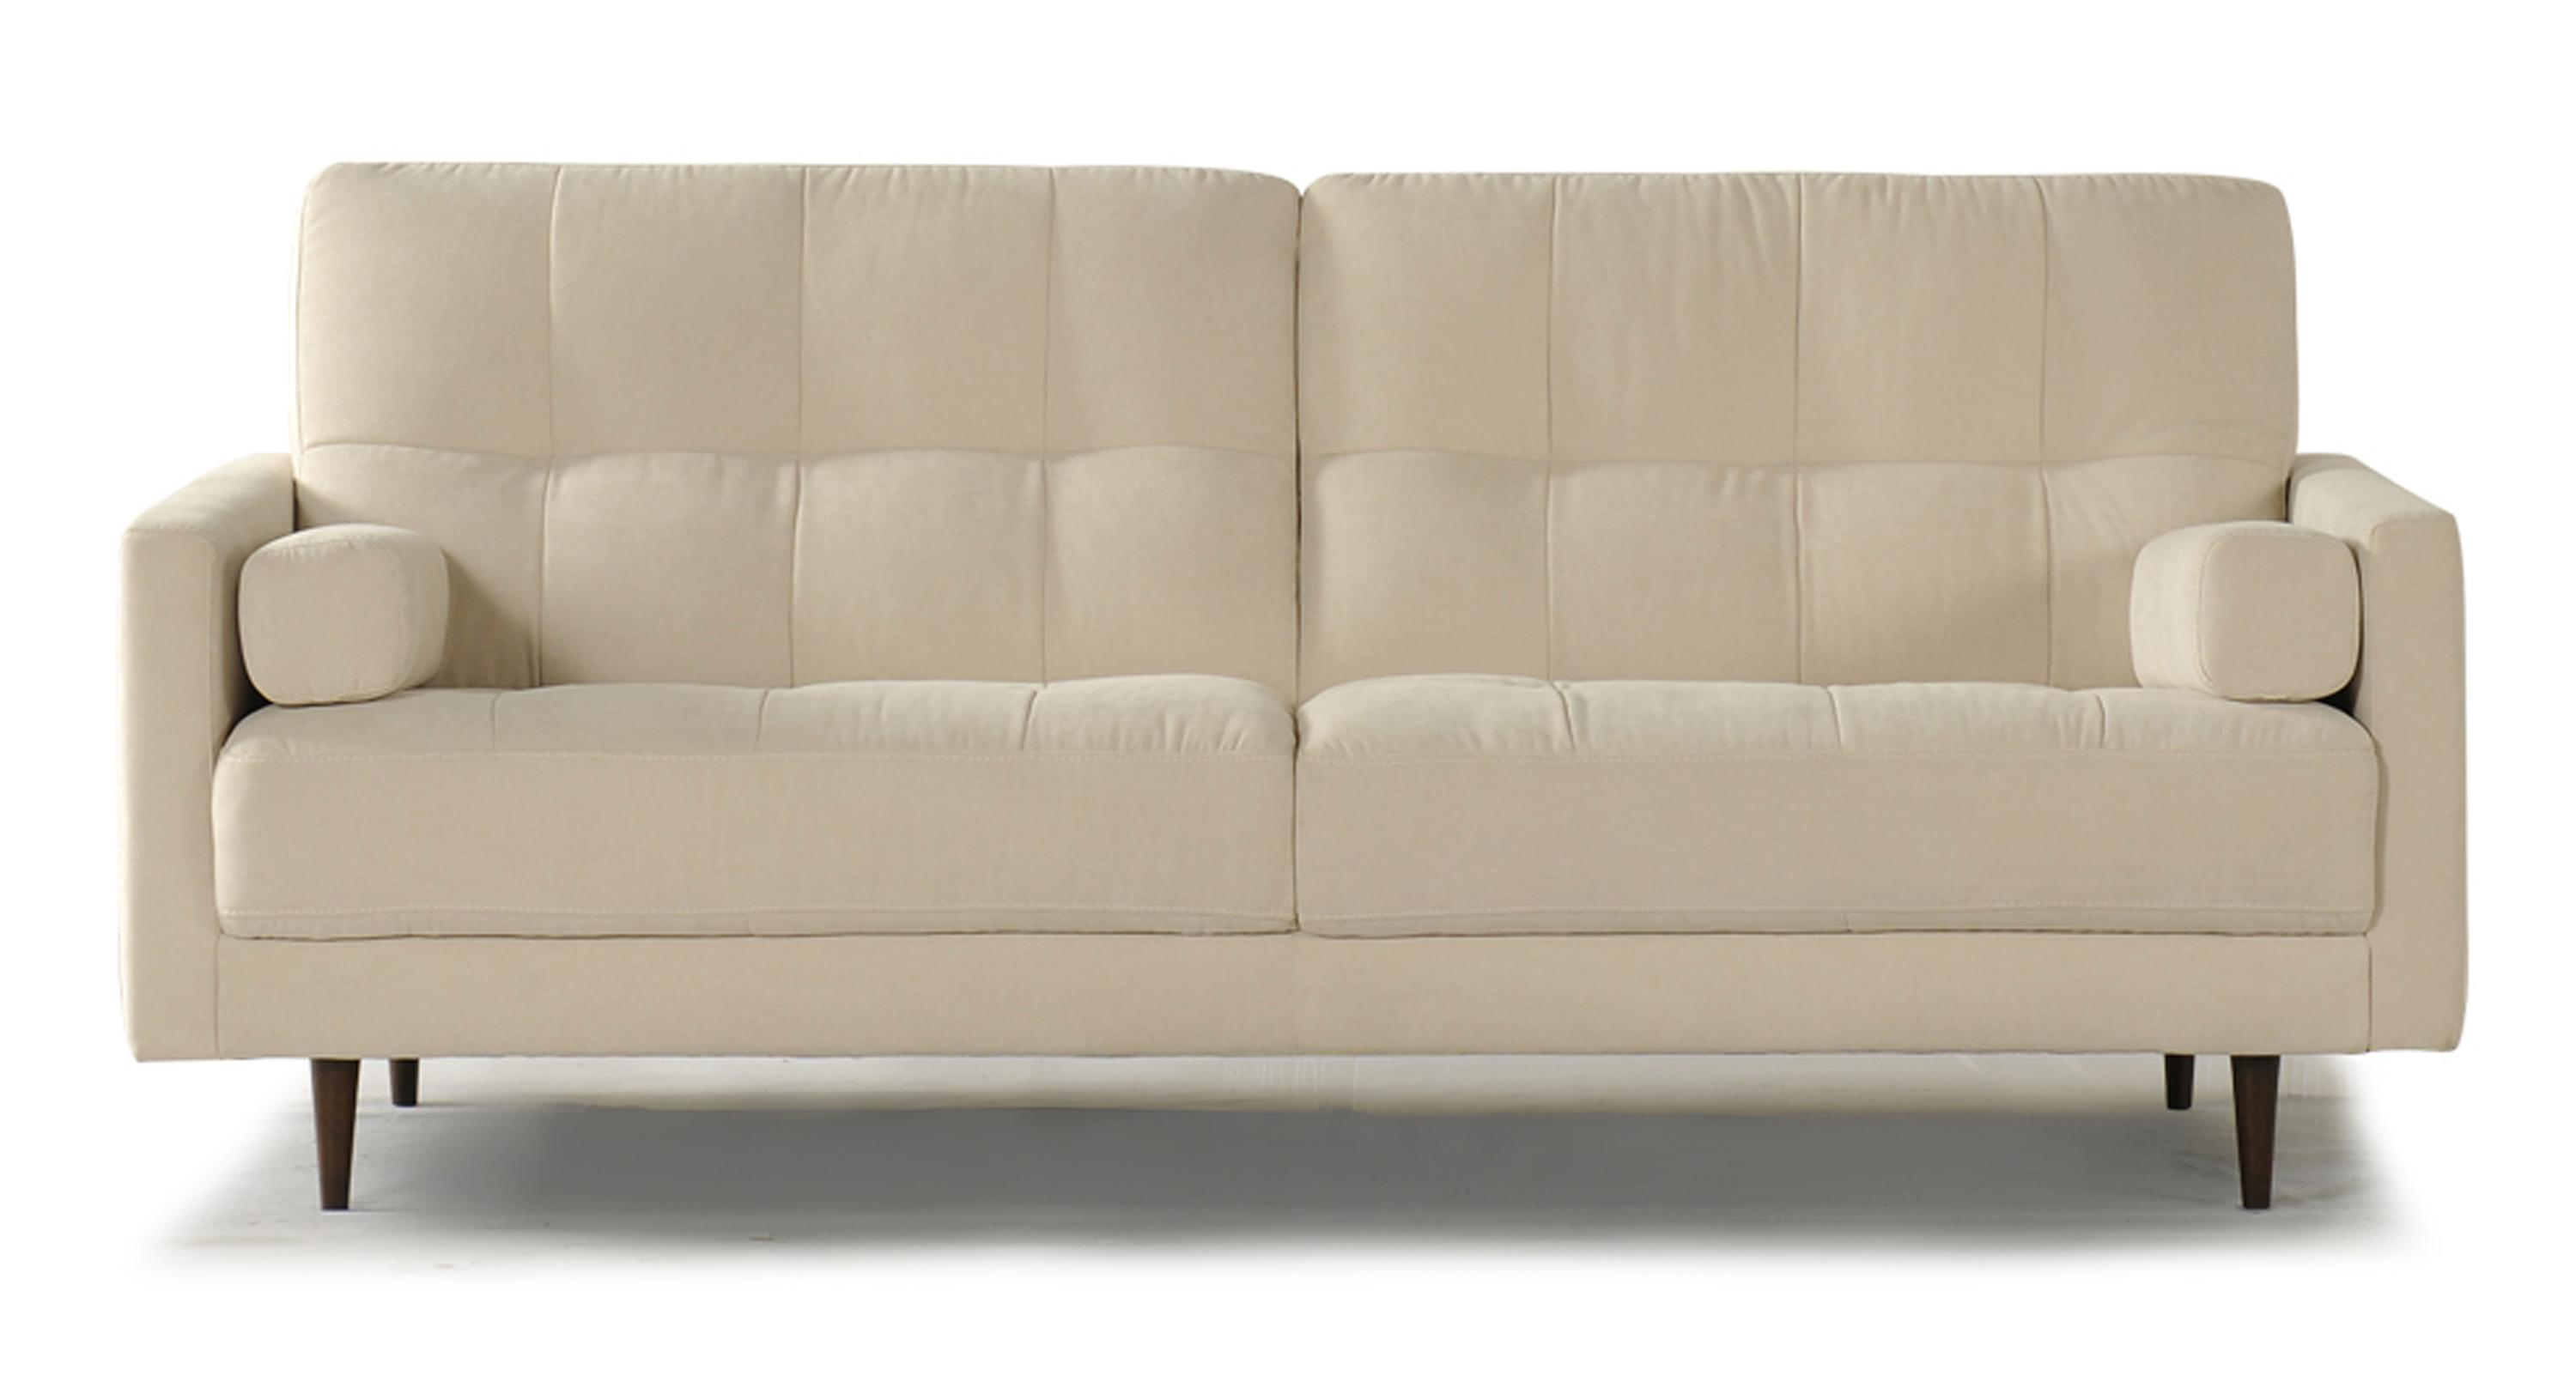 7904A Sofa by Violino at Furniture Superstore - Rochester, MN